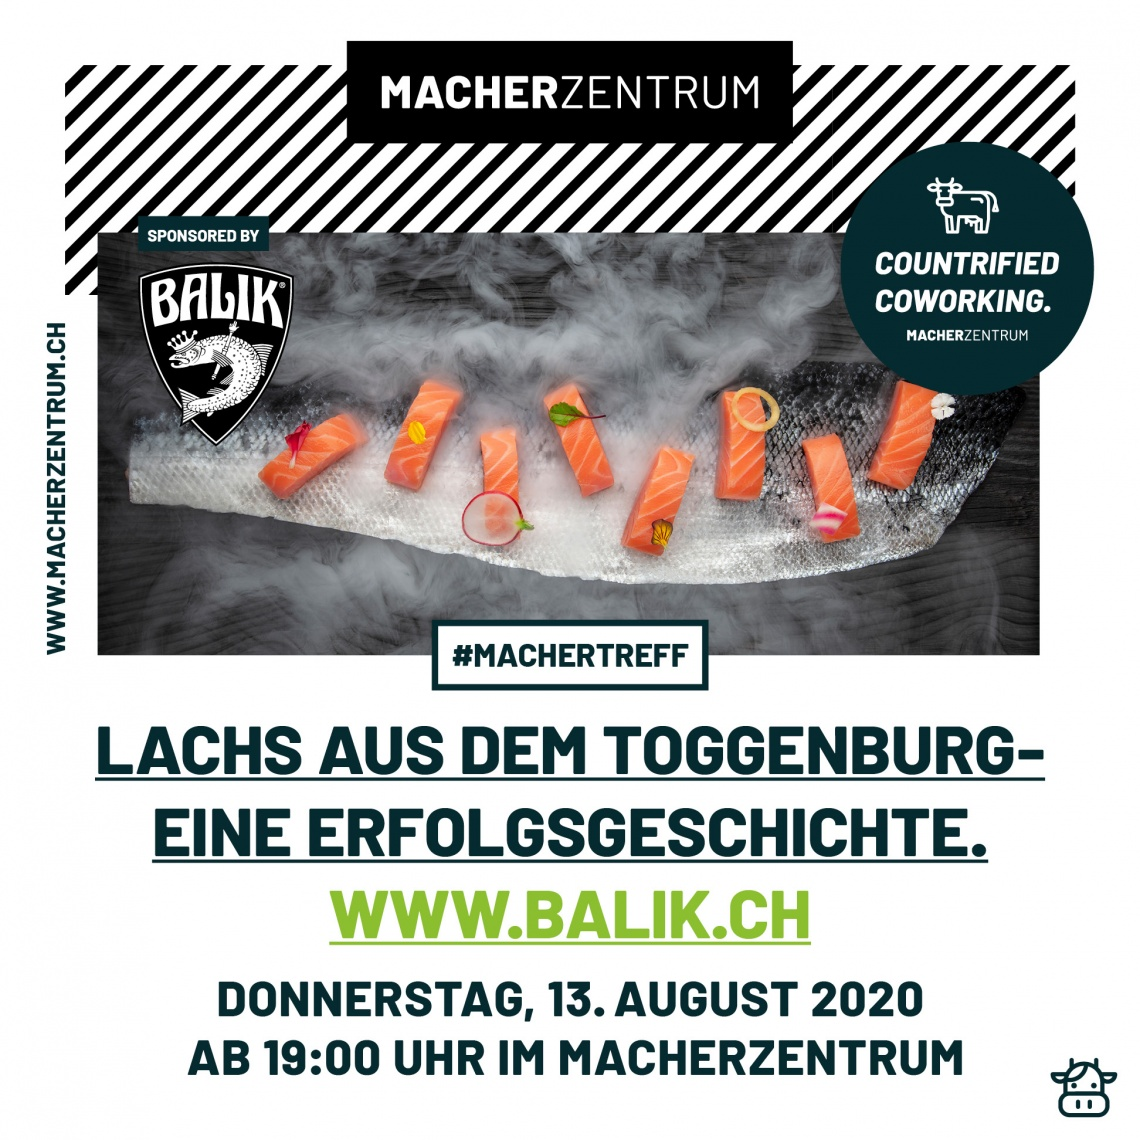 (Donnerstag, 13.08.2020)